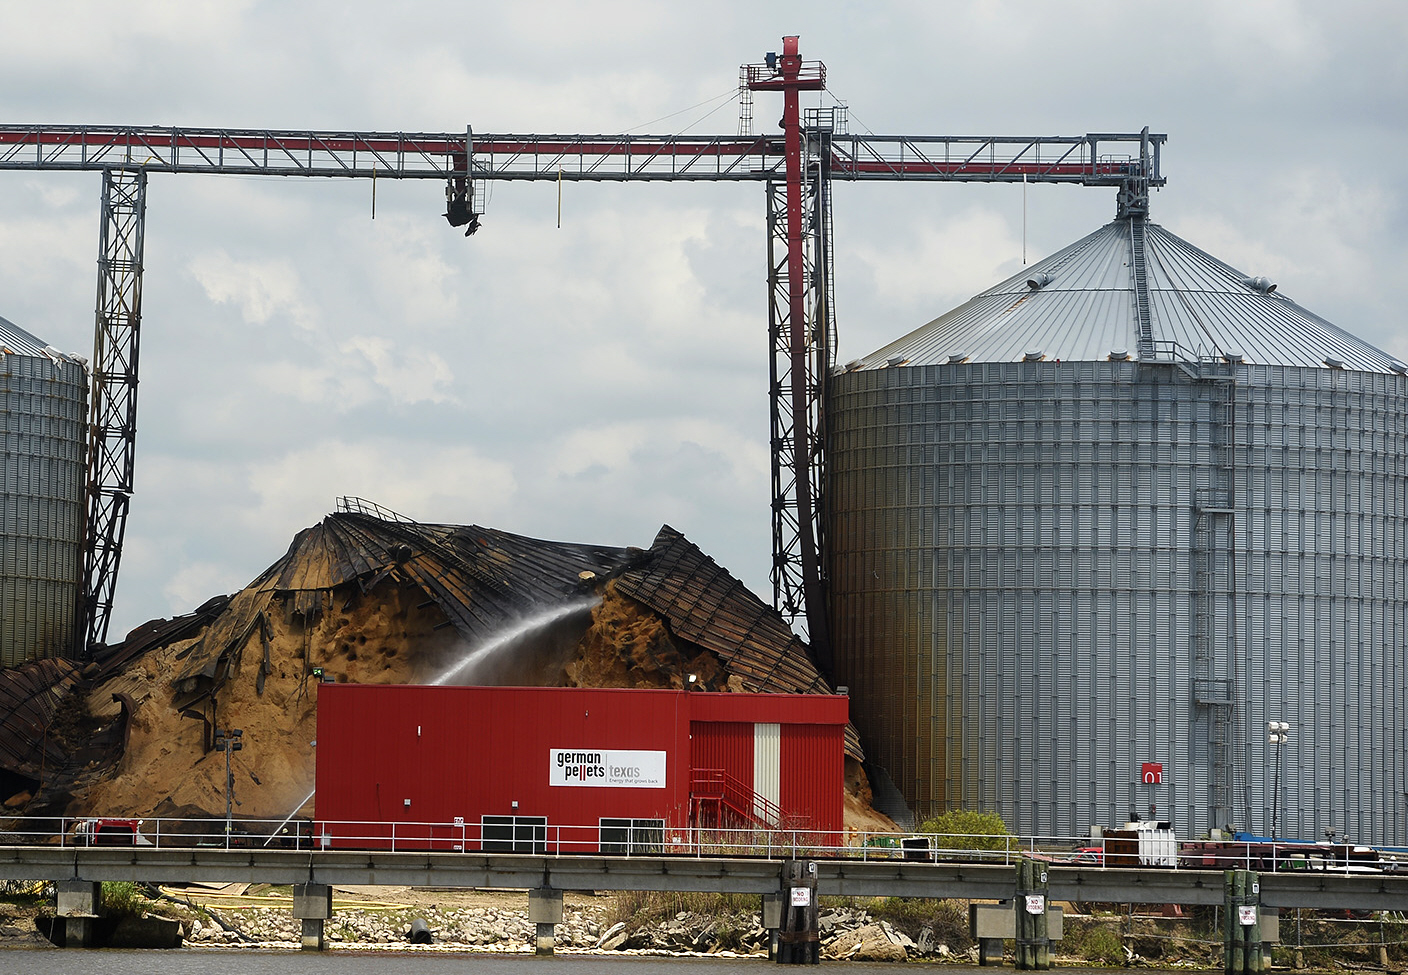 The collapsed silo at the German Pellets Texas site in Port Arthur